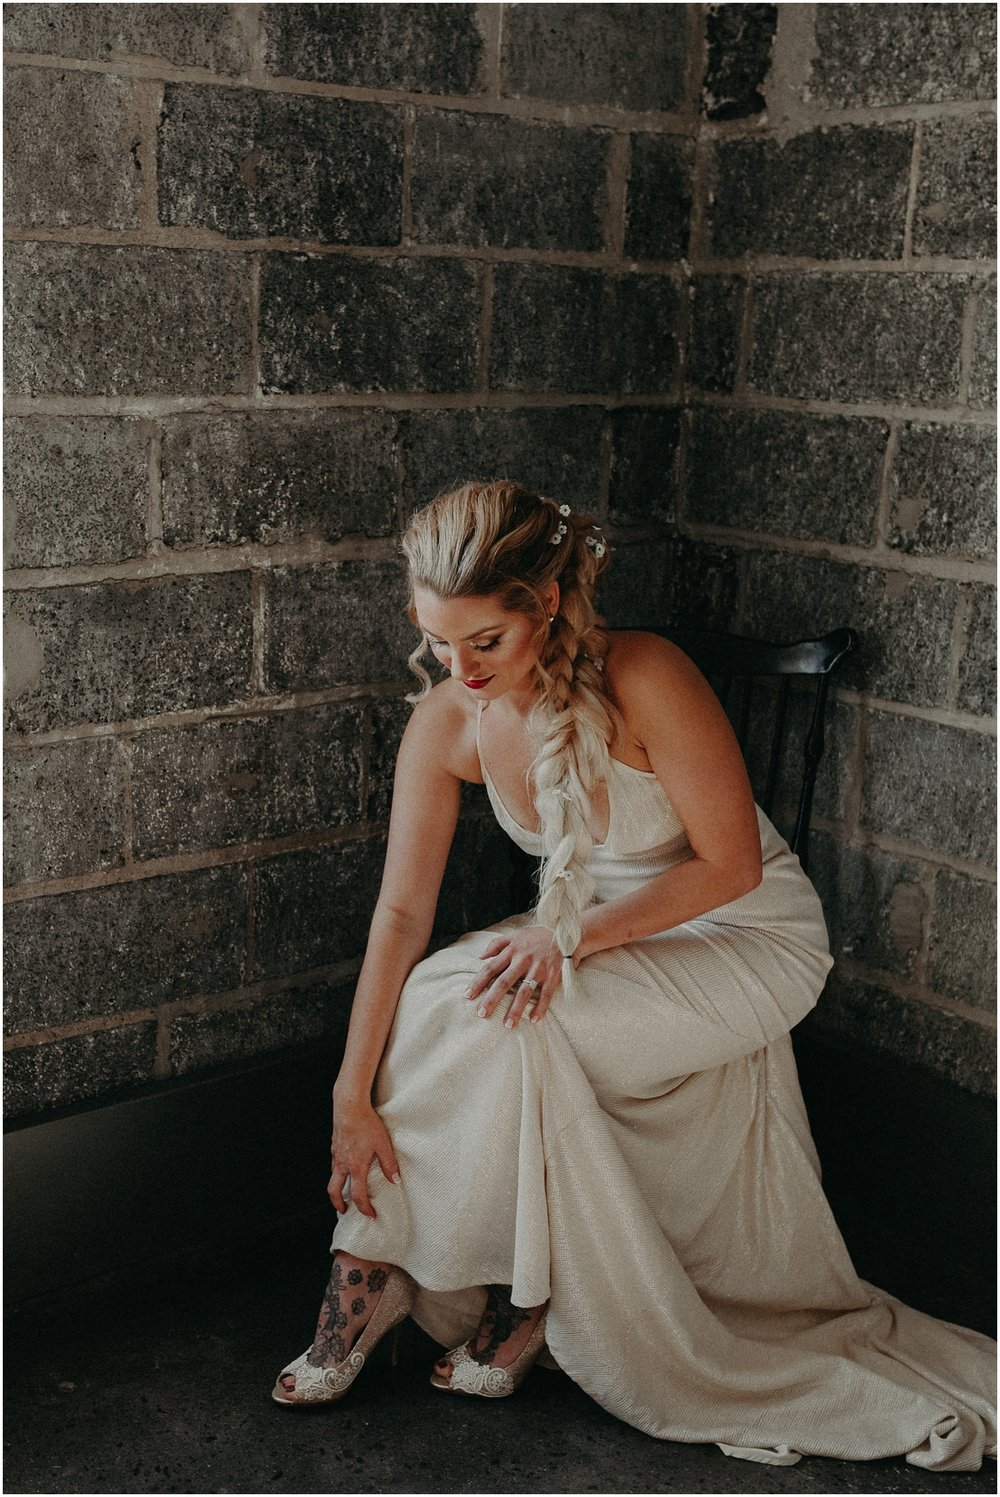 styled shoot-bridal portraits-portraits-bride-rock and roll-industrial-urban-wedding-inspiration-nj-new jersey-nyc-new york city-art-diy wedding_0092.jpg